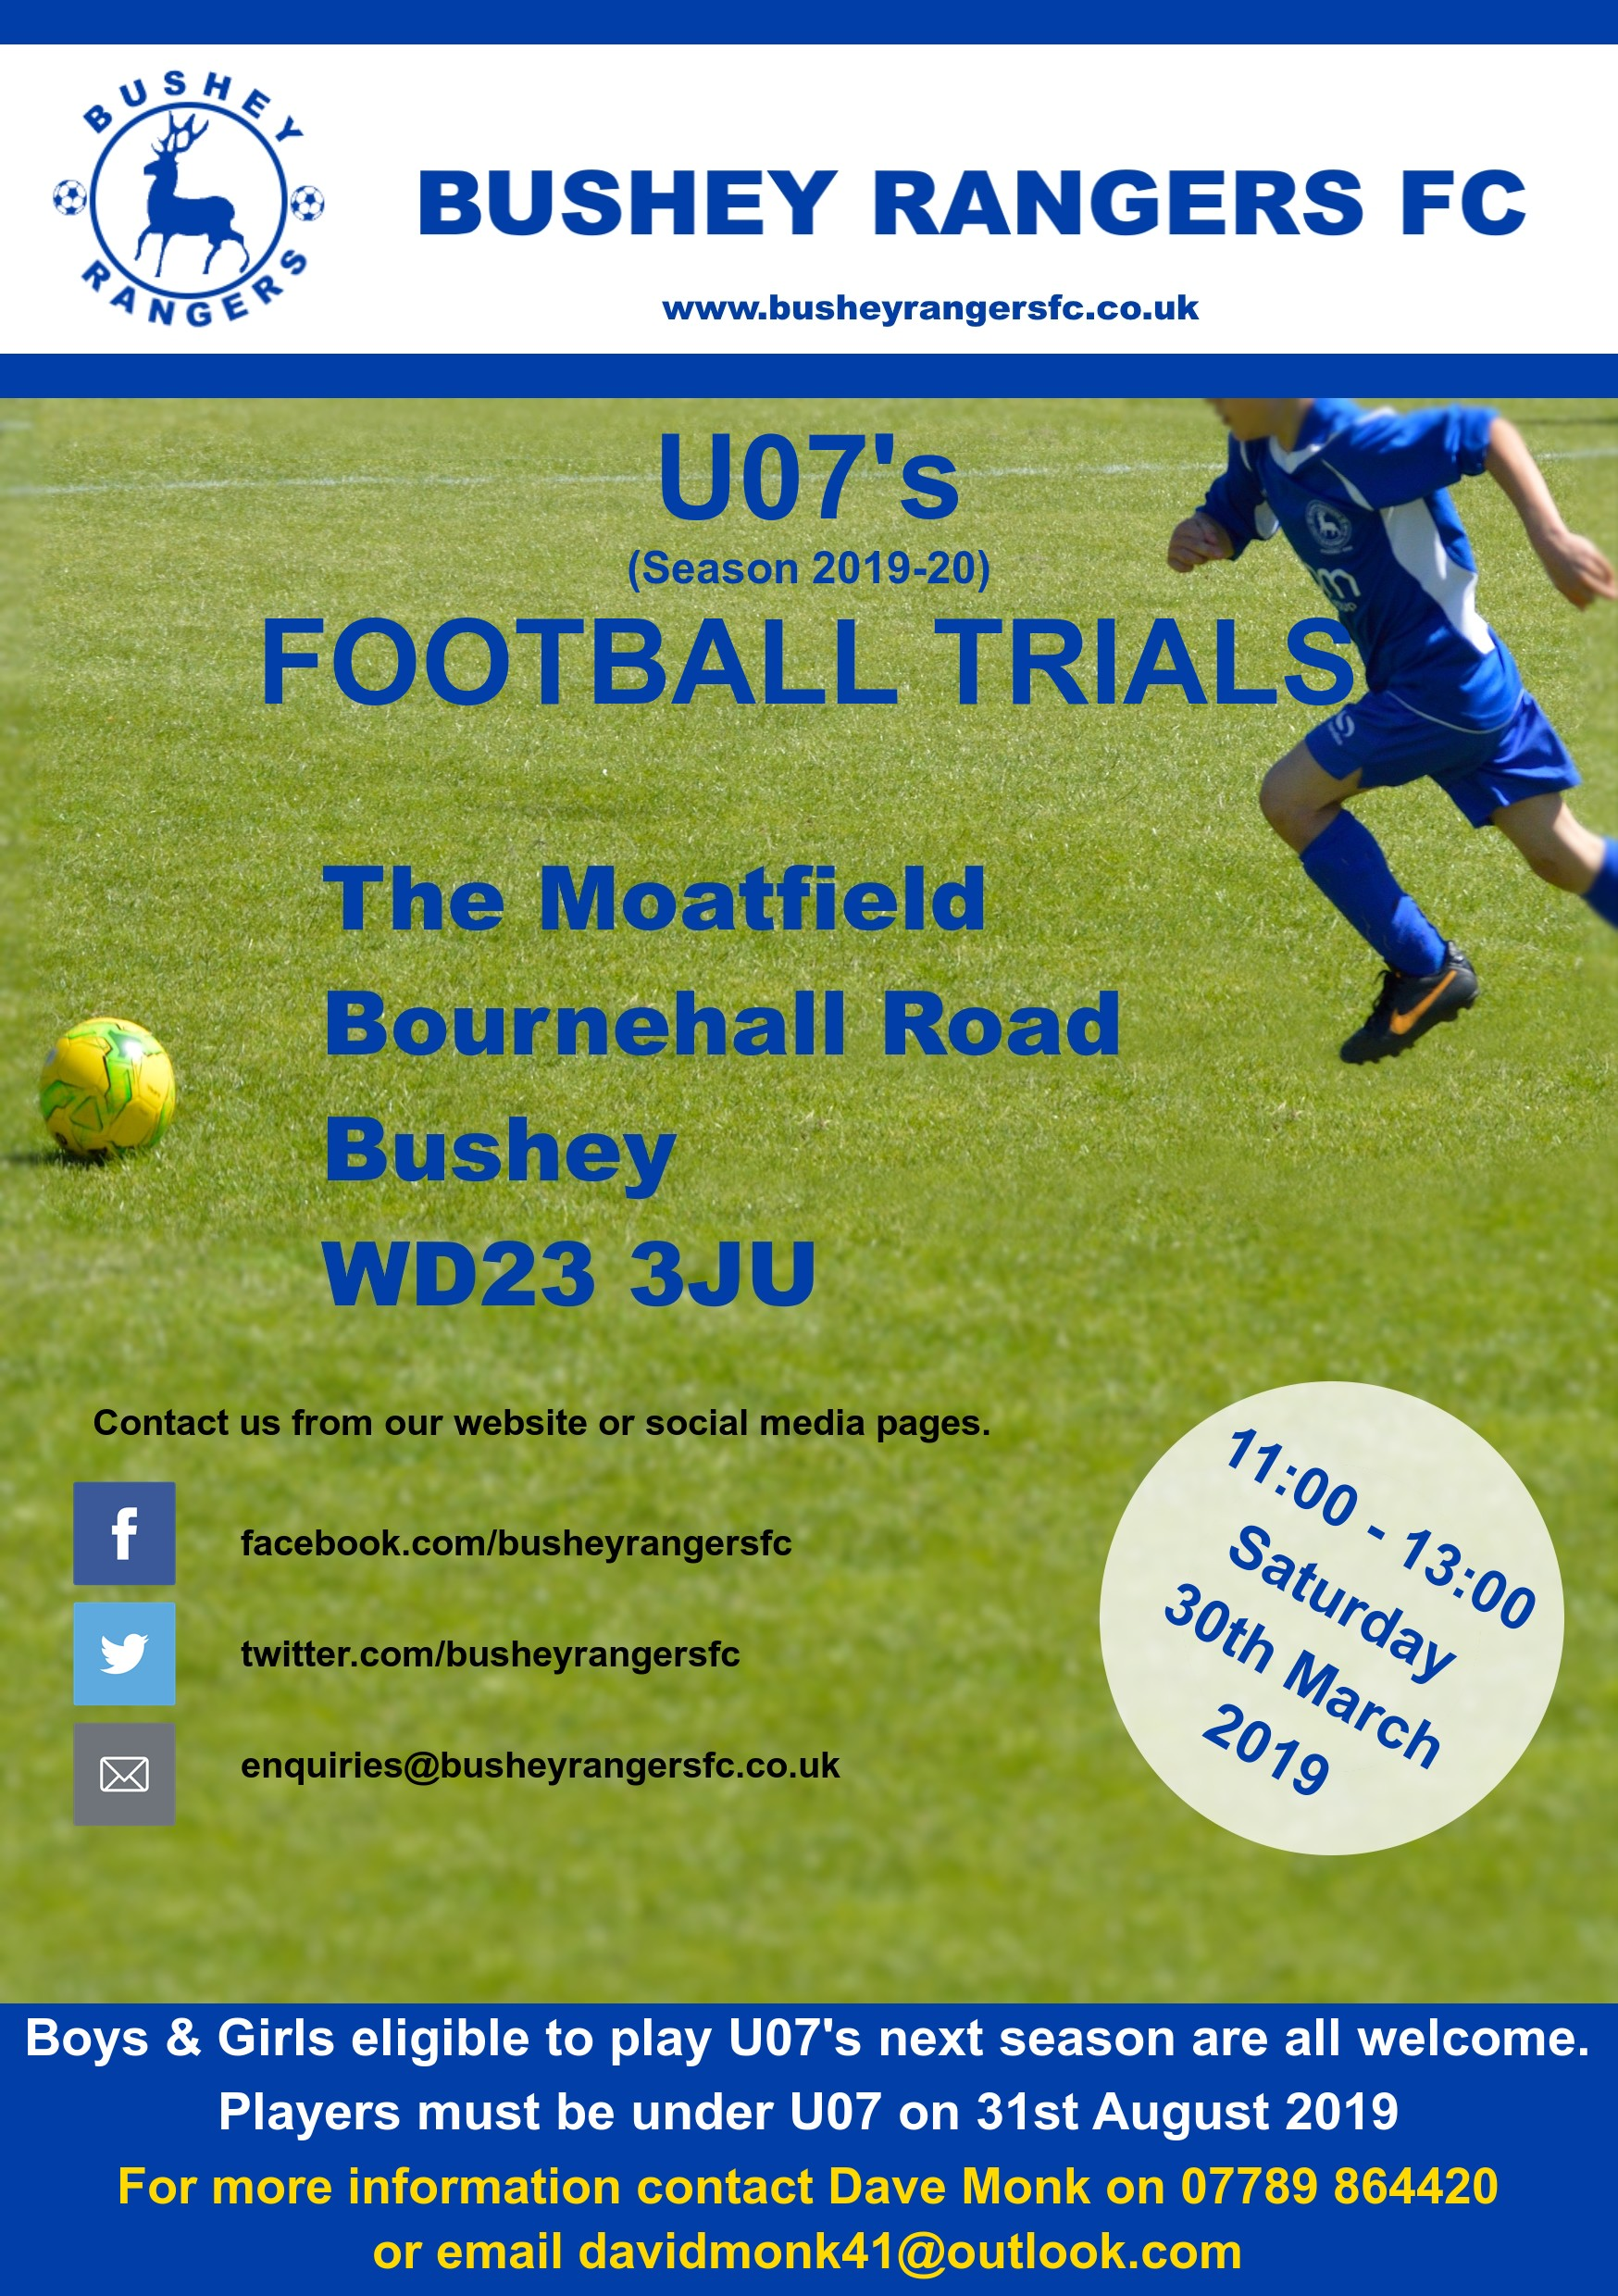 Under 07's Football Trials